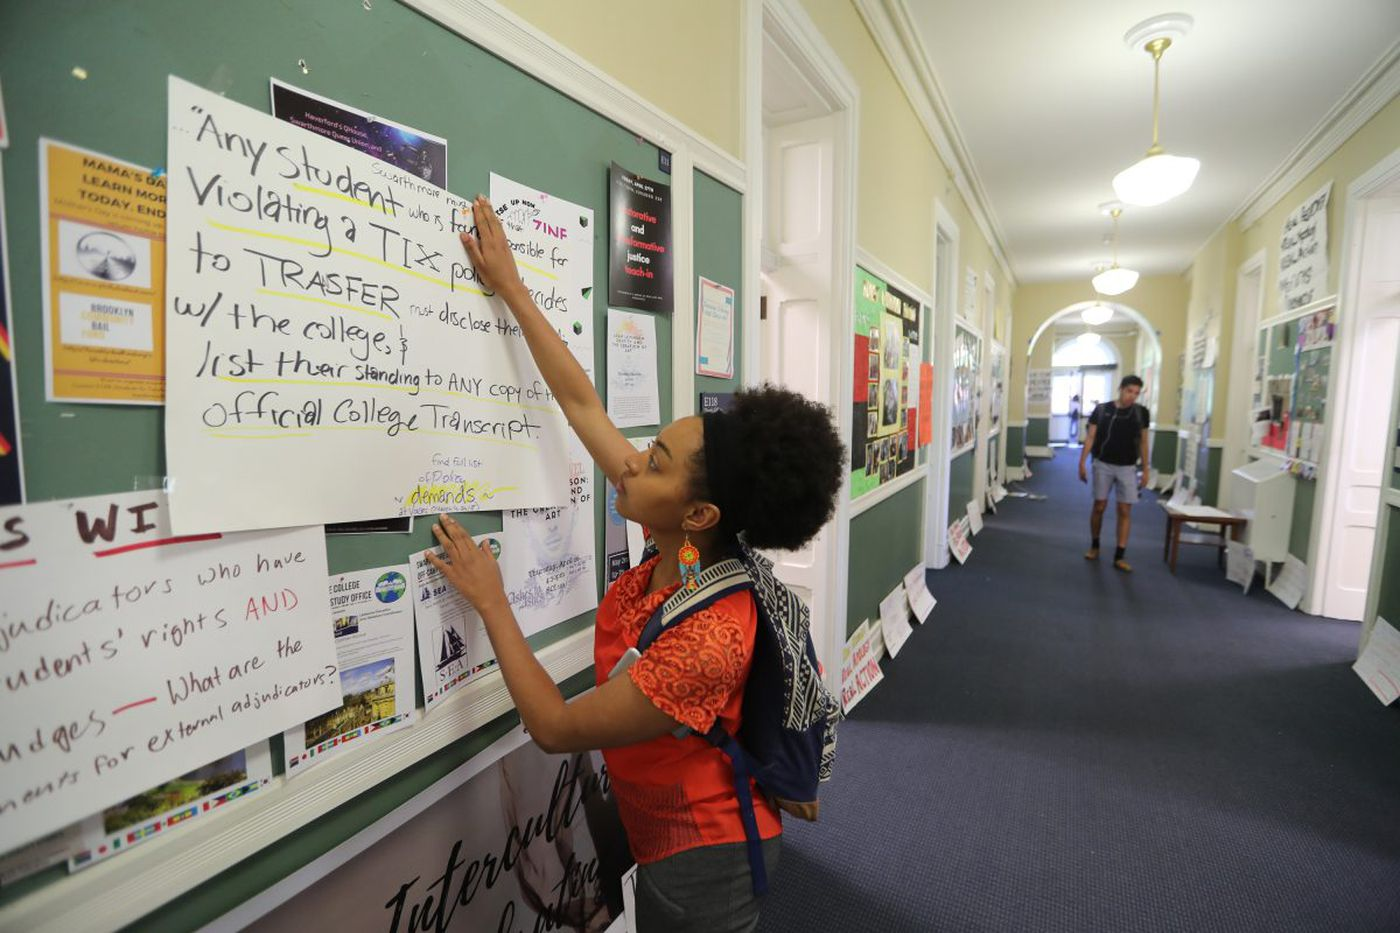 Swarthmore dean, focus of student protests, resigns